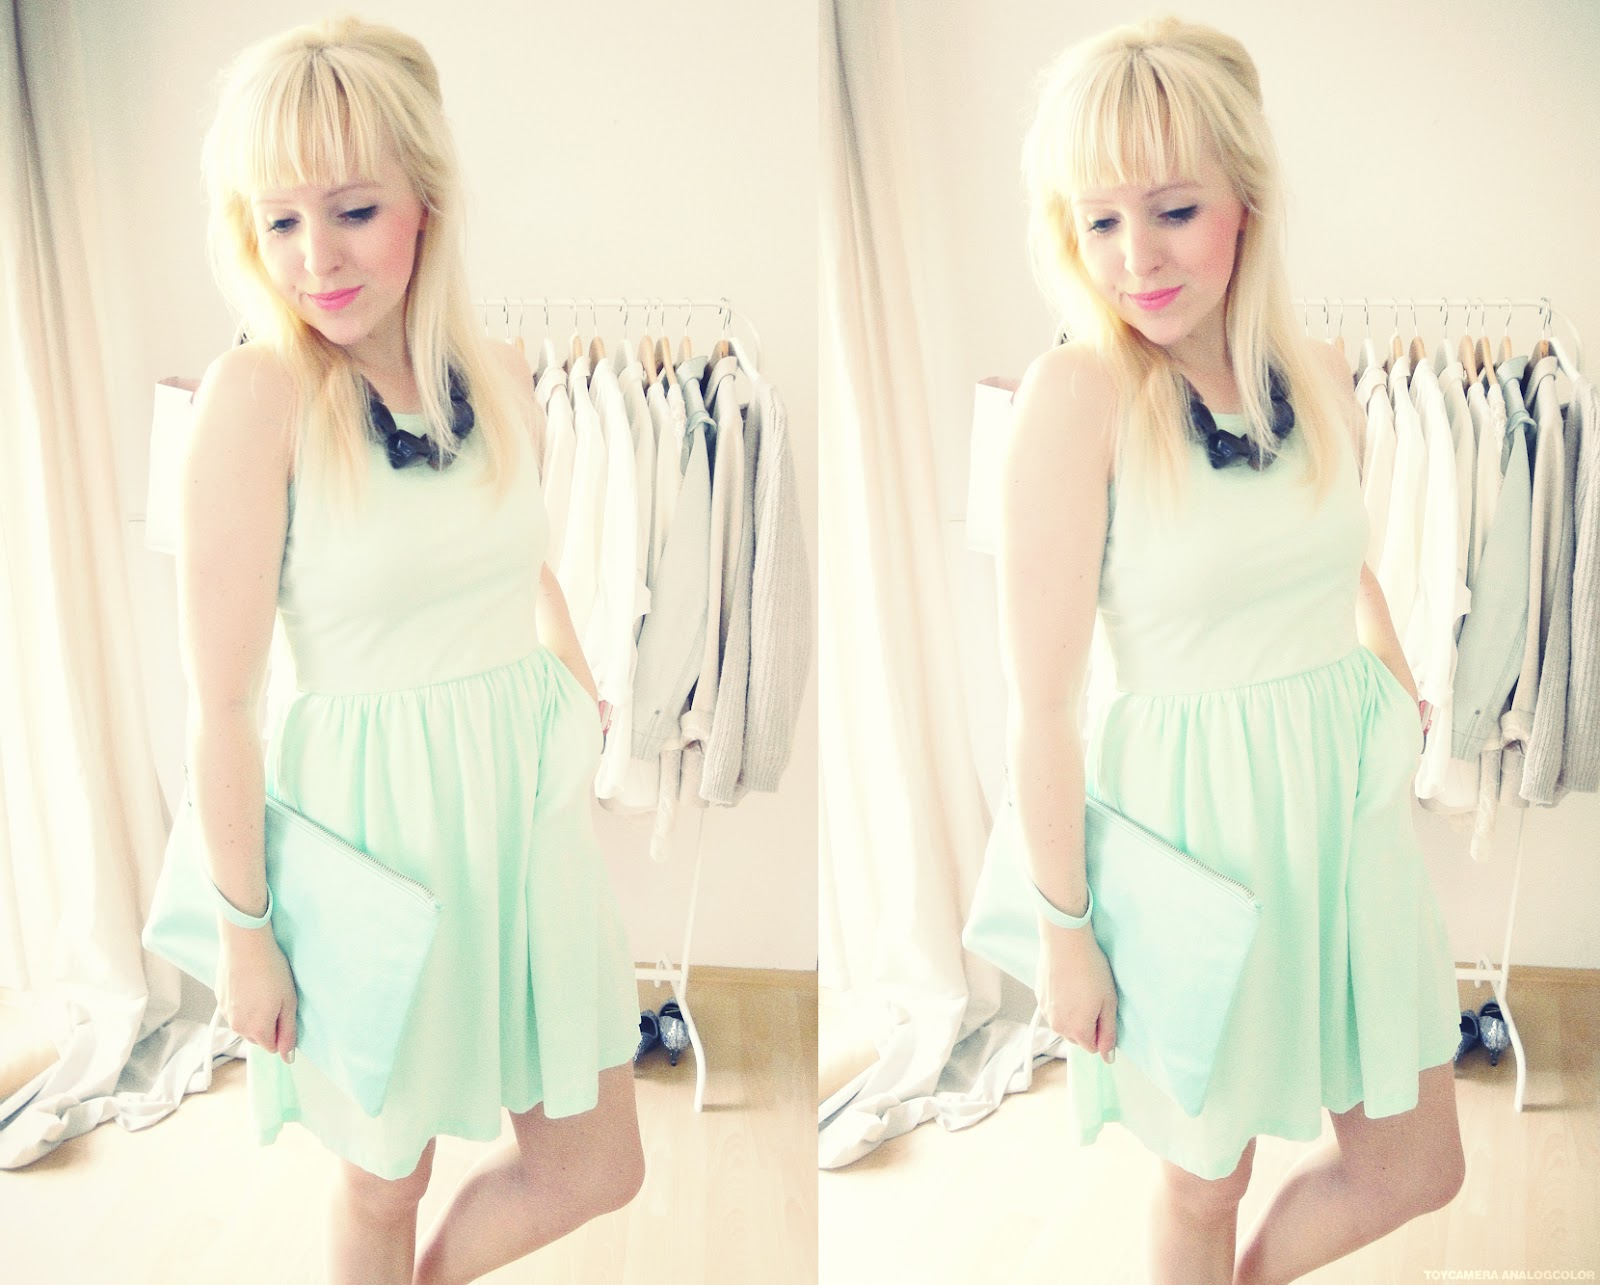 haarschnitt sonnenschein und ein mintfarbenes kleid. Black Bedroom Furniture Sets. Home Design Ideas